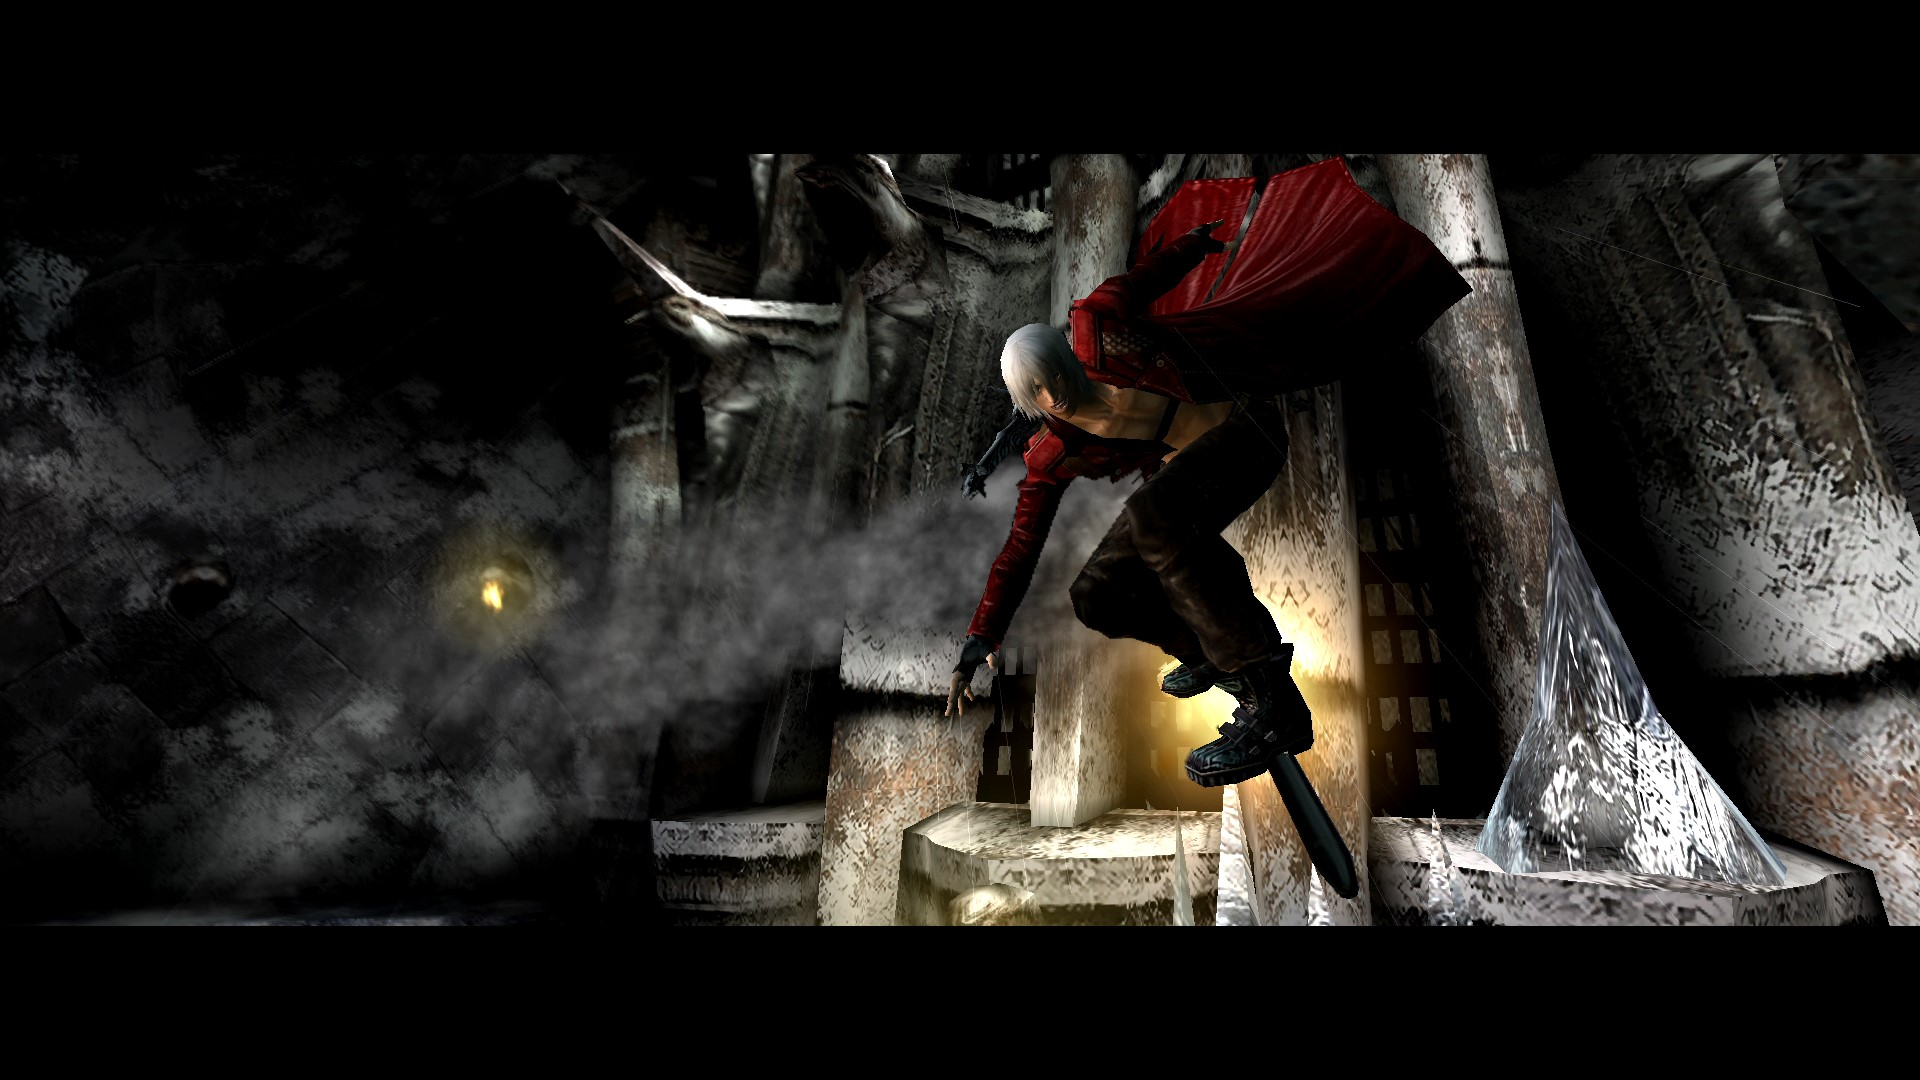 Devil_May_Cry_3_Switch_Screens02